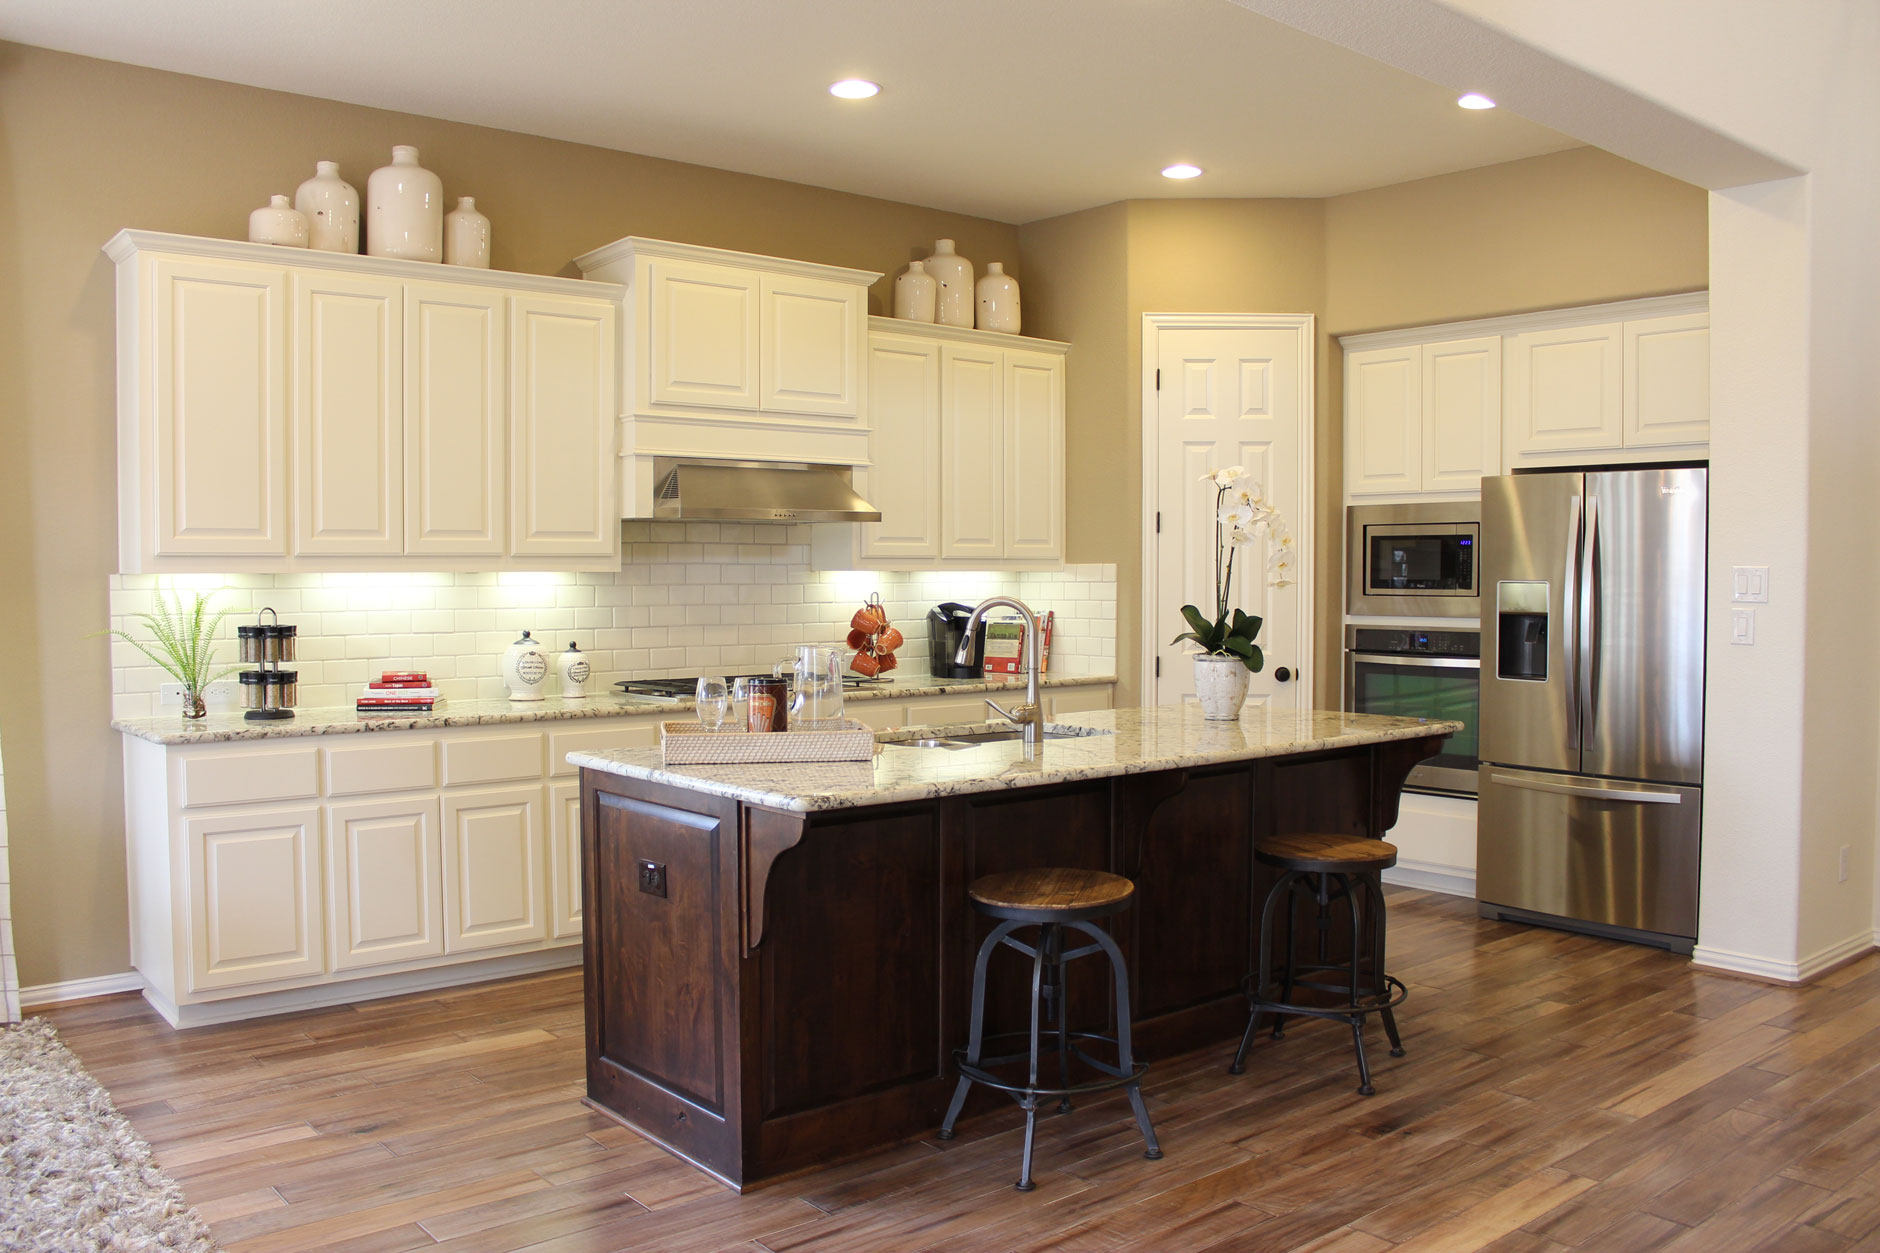 Kitchen and bath cabinet door news by taylorcraft cabinet for U kitchen and bath jericho